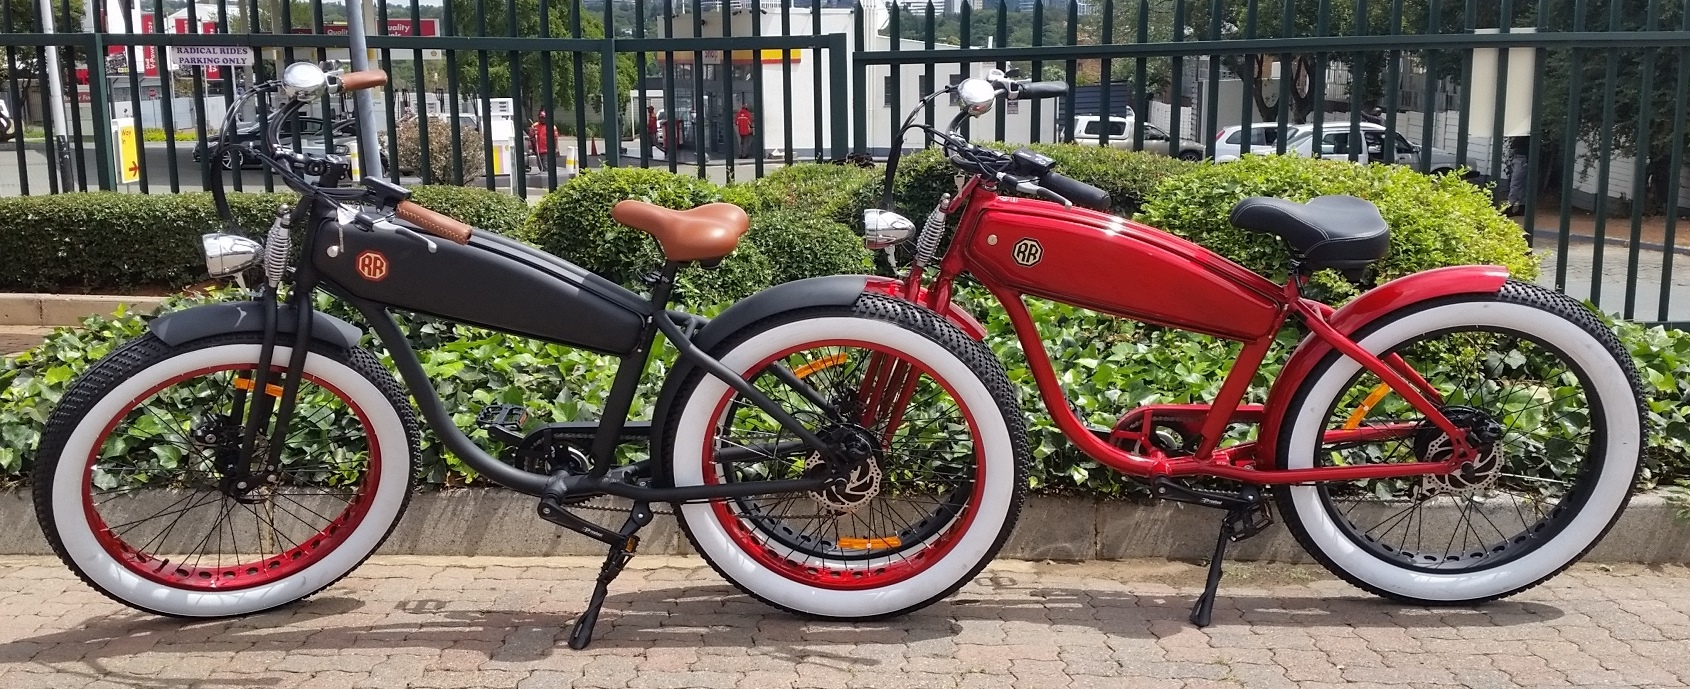 2018 Other Other (Trikes)